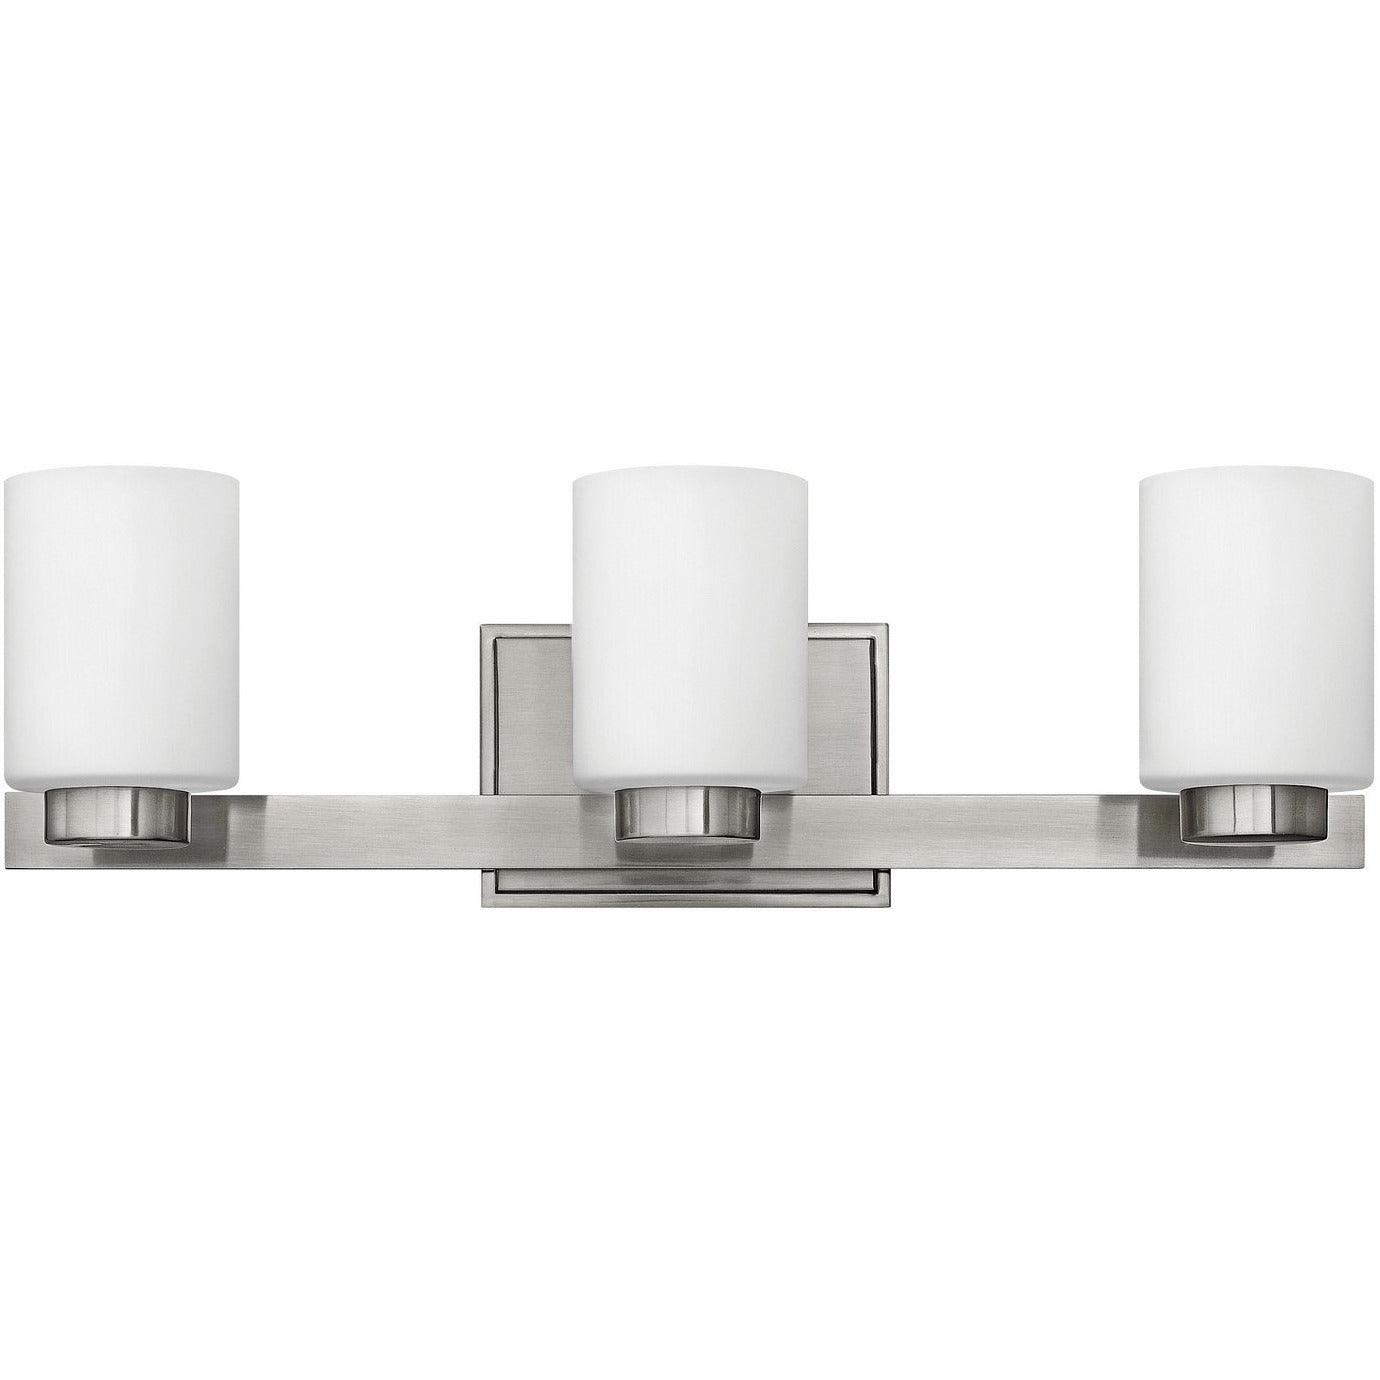 Hinkley Canada - 5053BN - Three Light Bath - Miley - Brushed Nickel